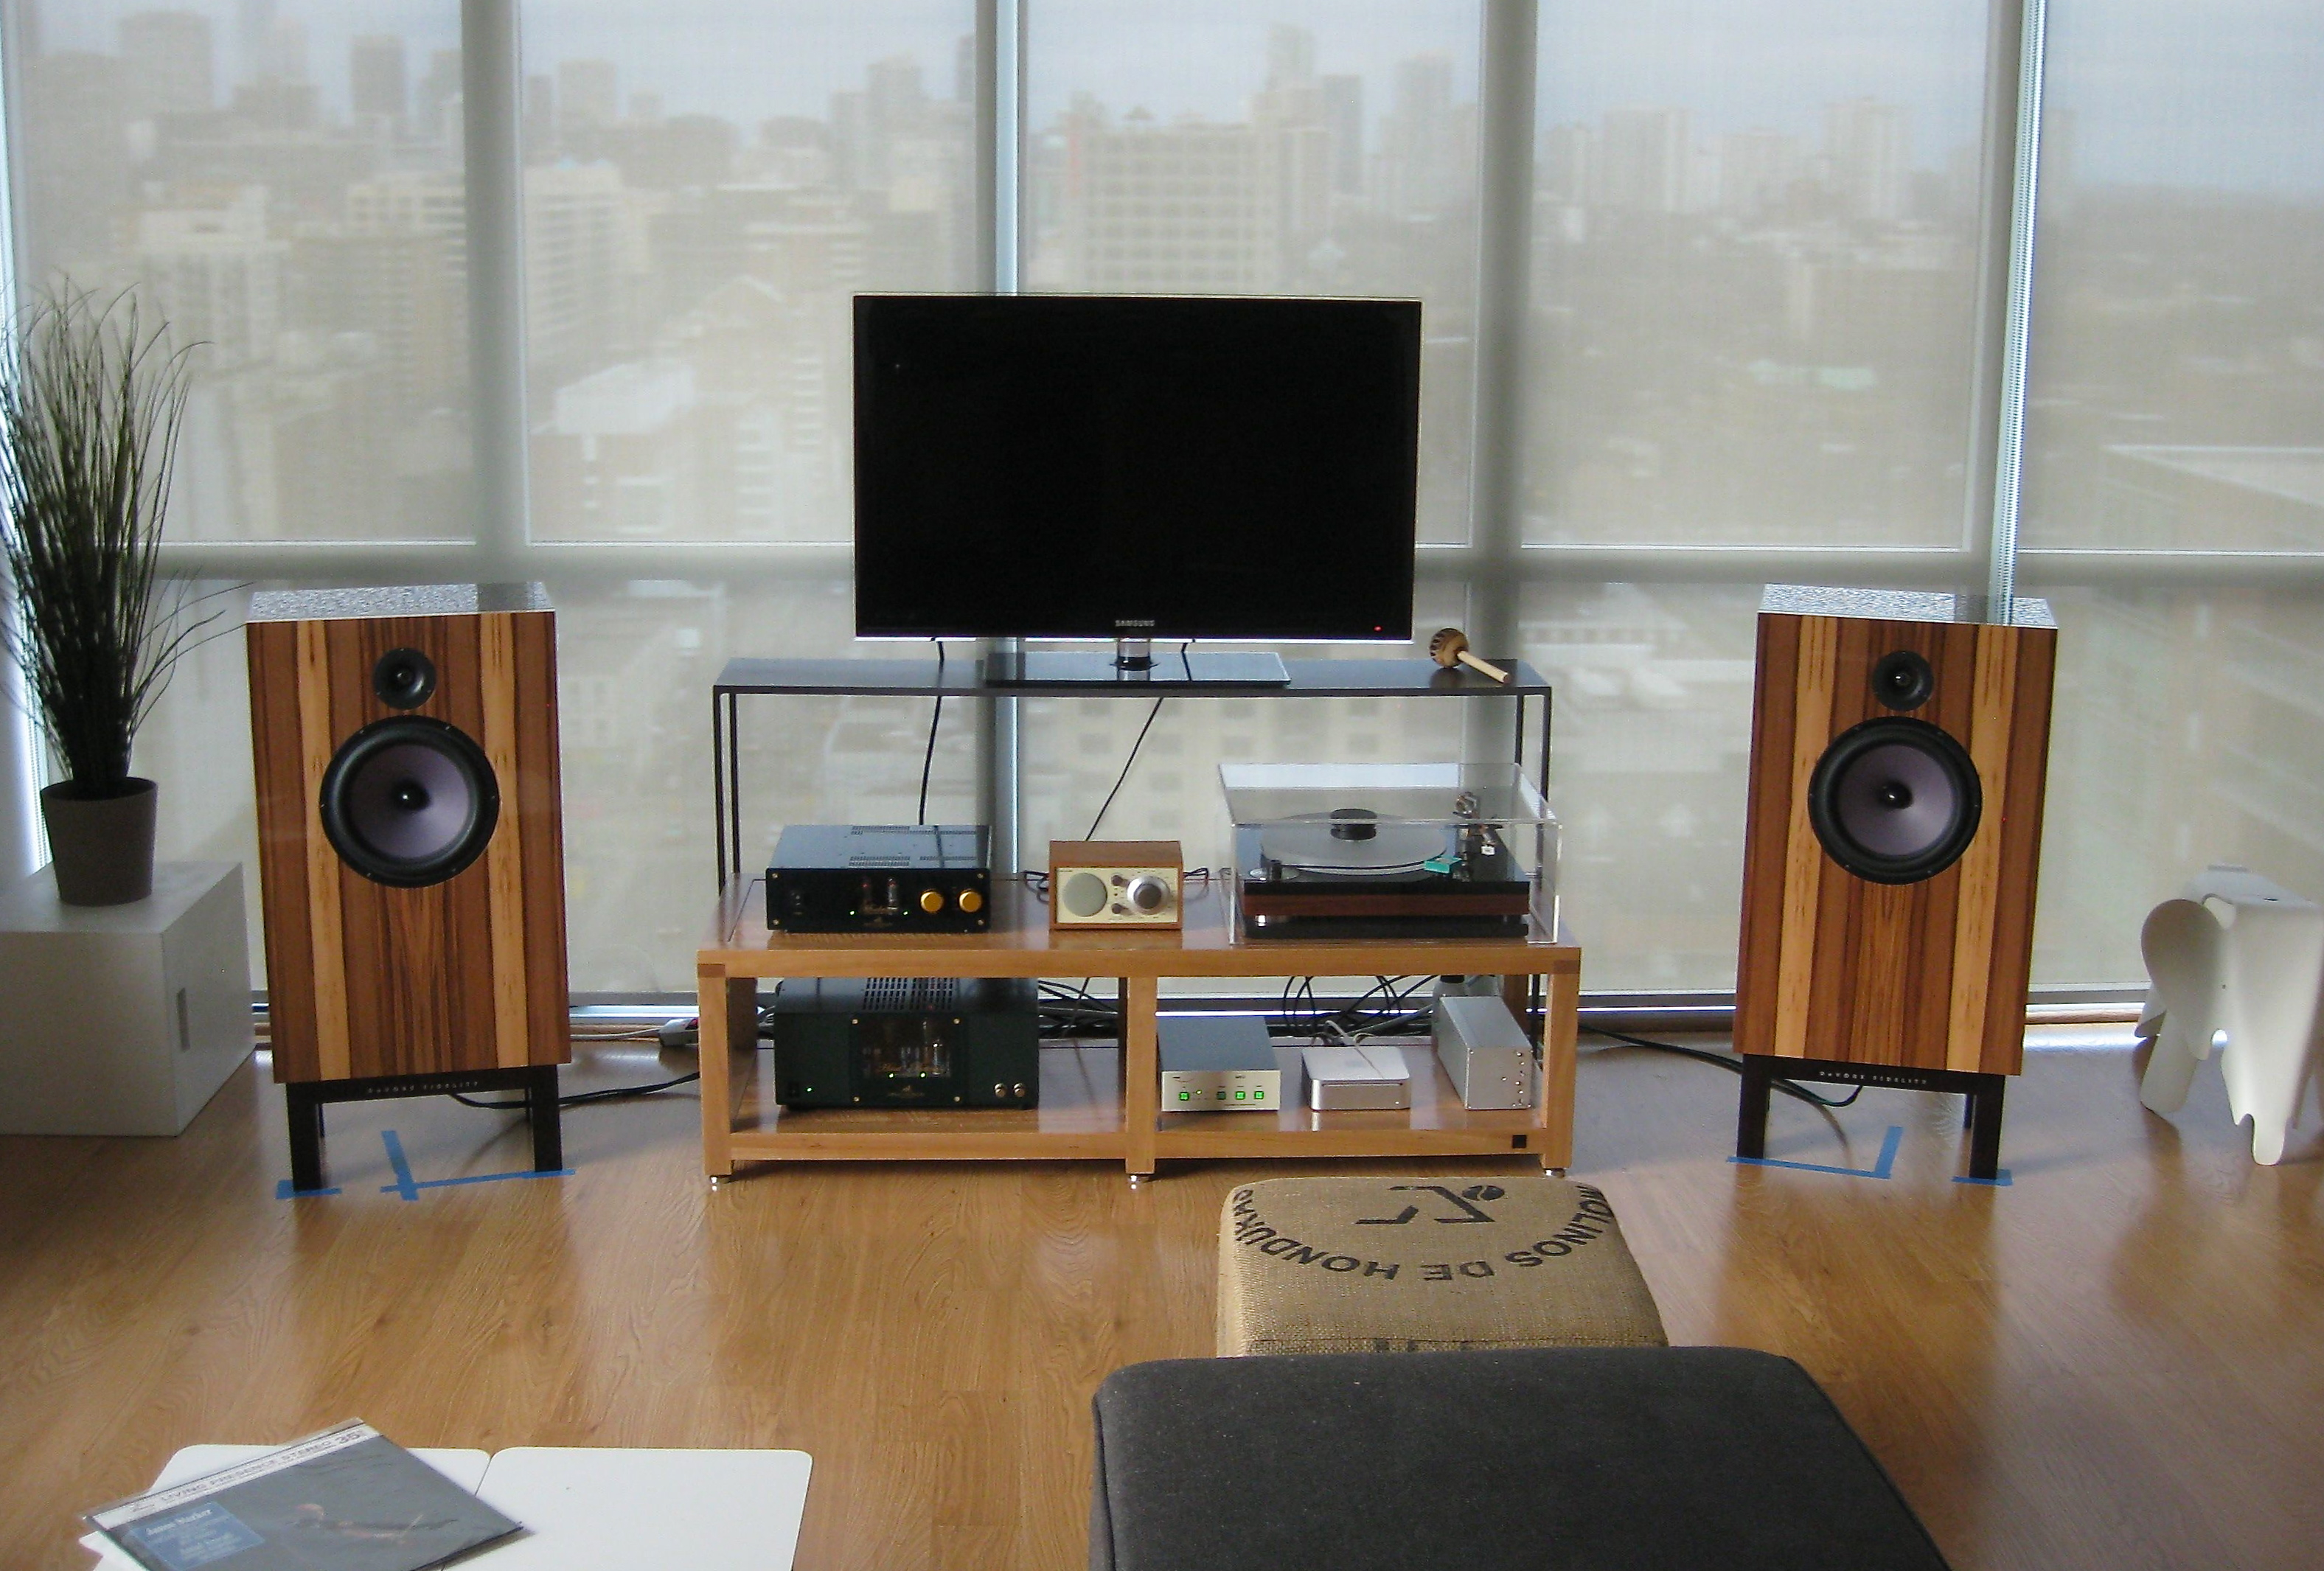 for but chair me woo listening the can zoomed my reviews of a is racks as out bedroom little off at look audio rack you headphone and page to it side threads tell owner unite s works station simple amp